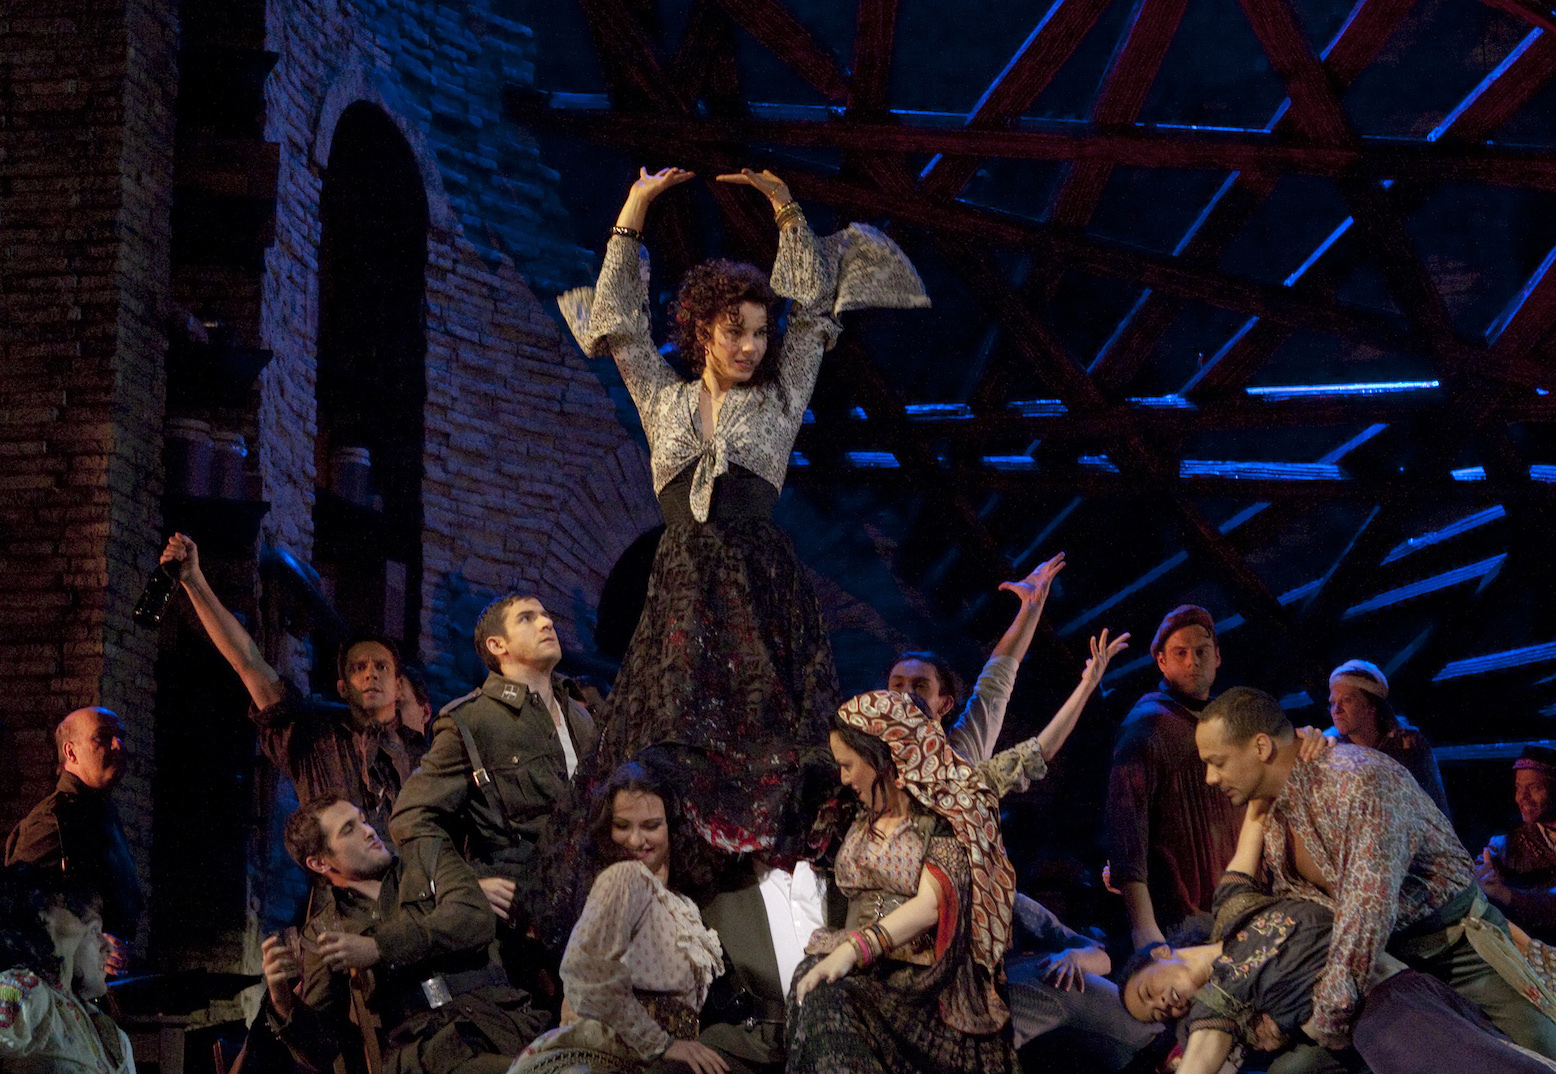 """A scene from Act II of Bizet's """"Carmen"""" with Elina Garanca (center) in the title role"""